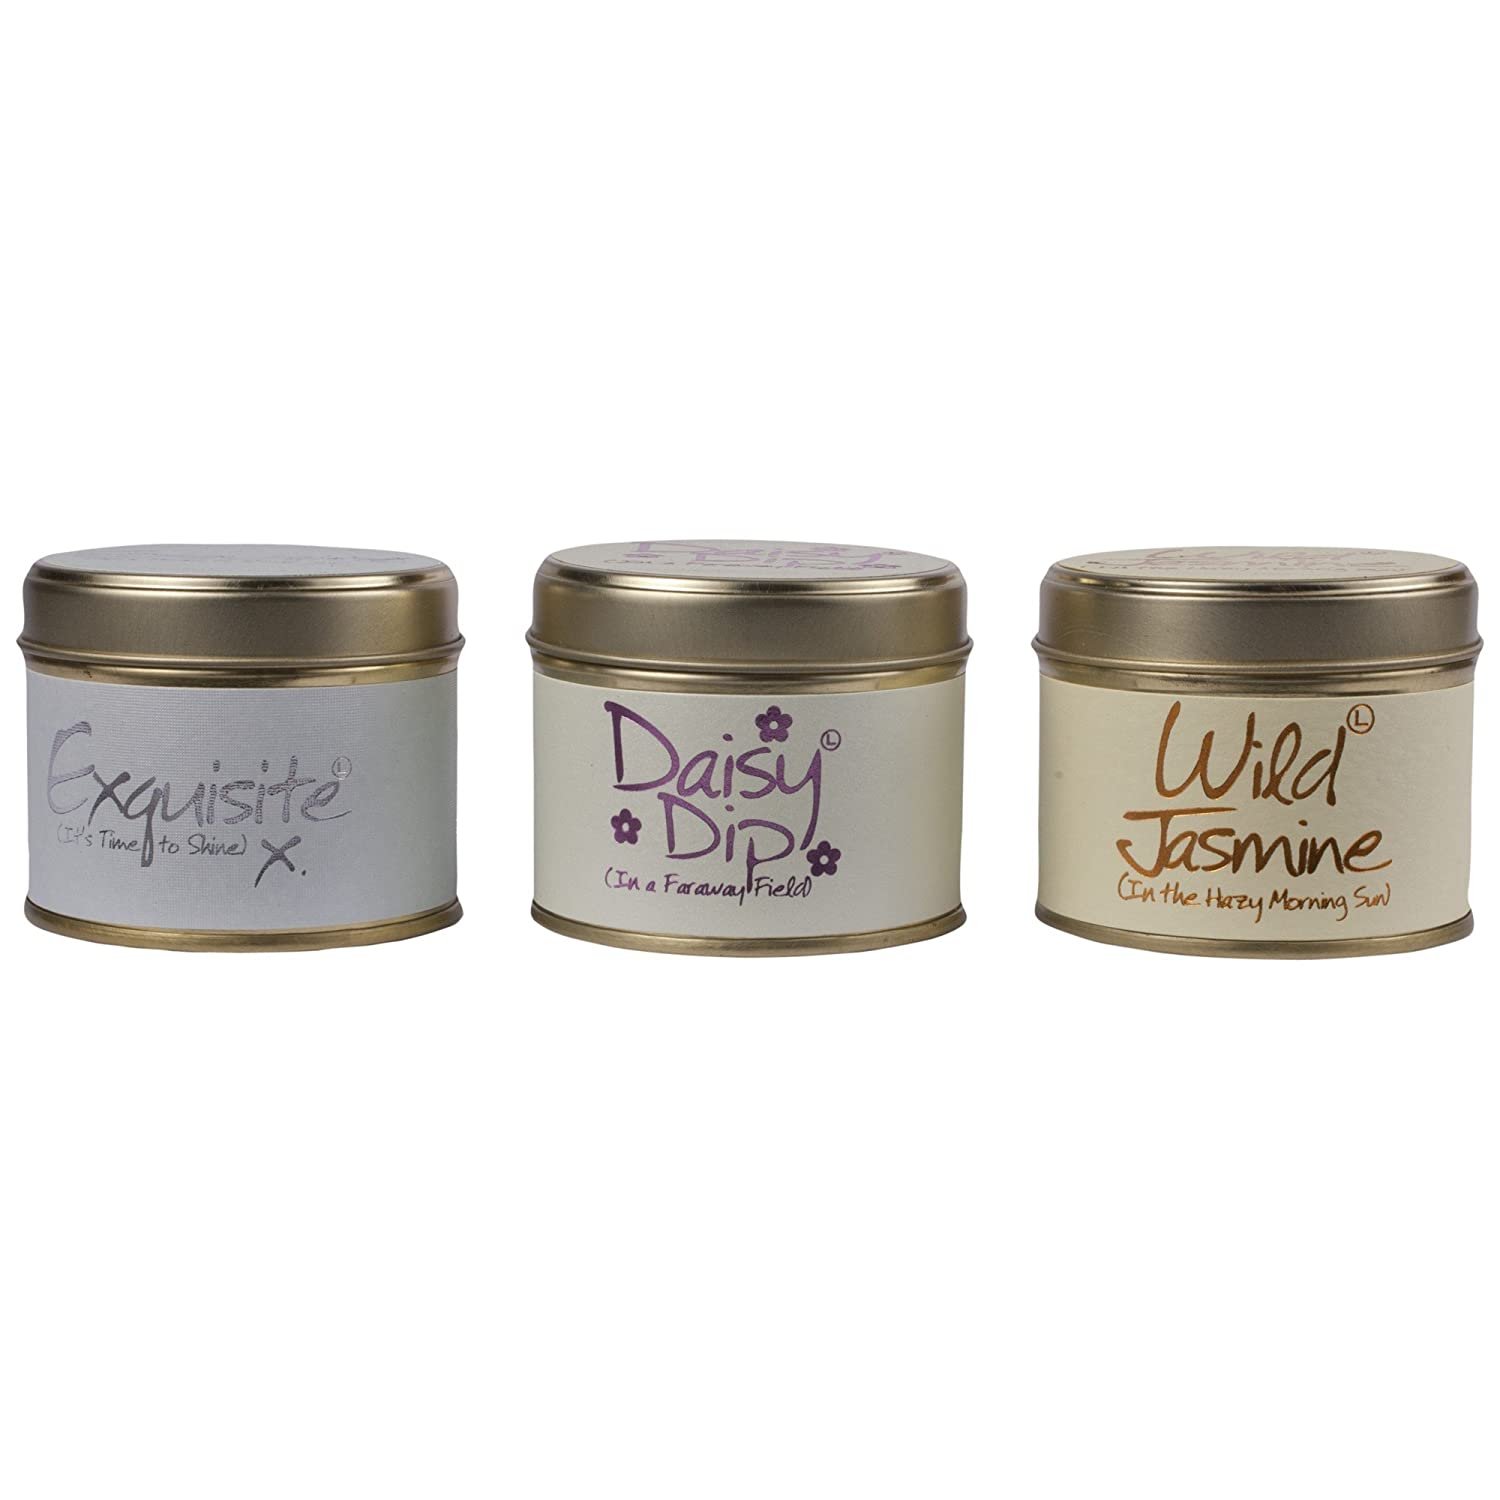 Lily-Flame Scented Candle Trio (Pack of 6) - ユリ炎香りのキャンドルトリオ (Lily-Flame) (x6) [並行輸入品] B01N3SOYZP